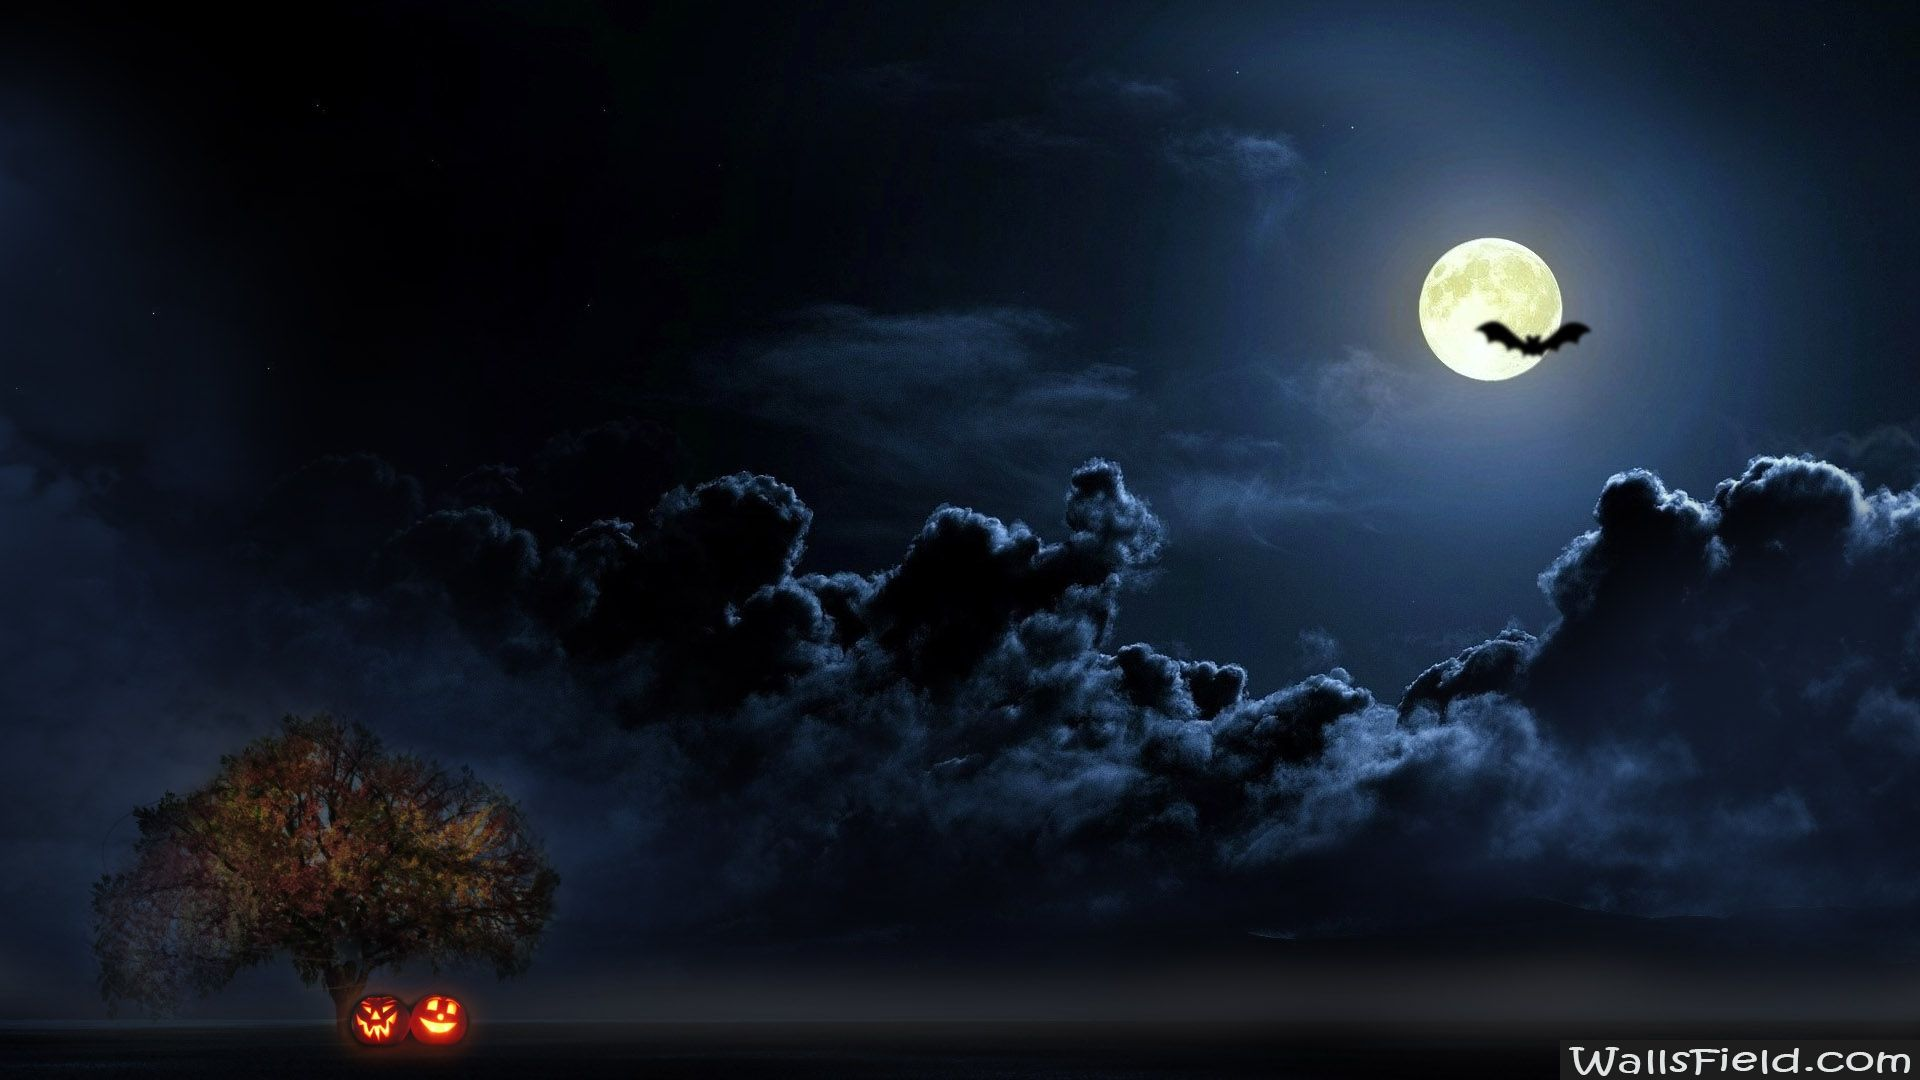 You can view download and comment on romantic halloween free hd you can view download and comment on romantic halloween free hd wallpapers for your desktop halloween wallpapergood night voltagebd Choice Image